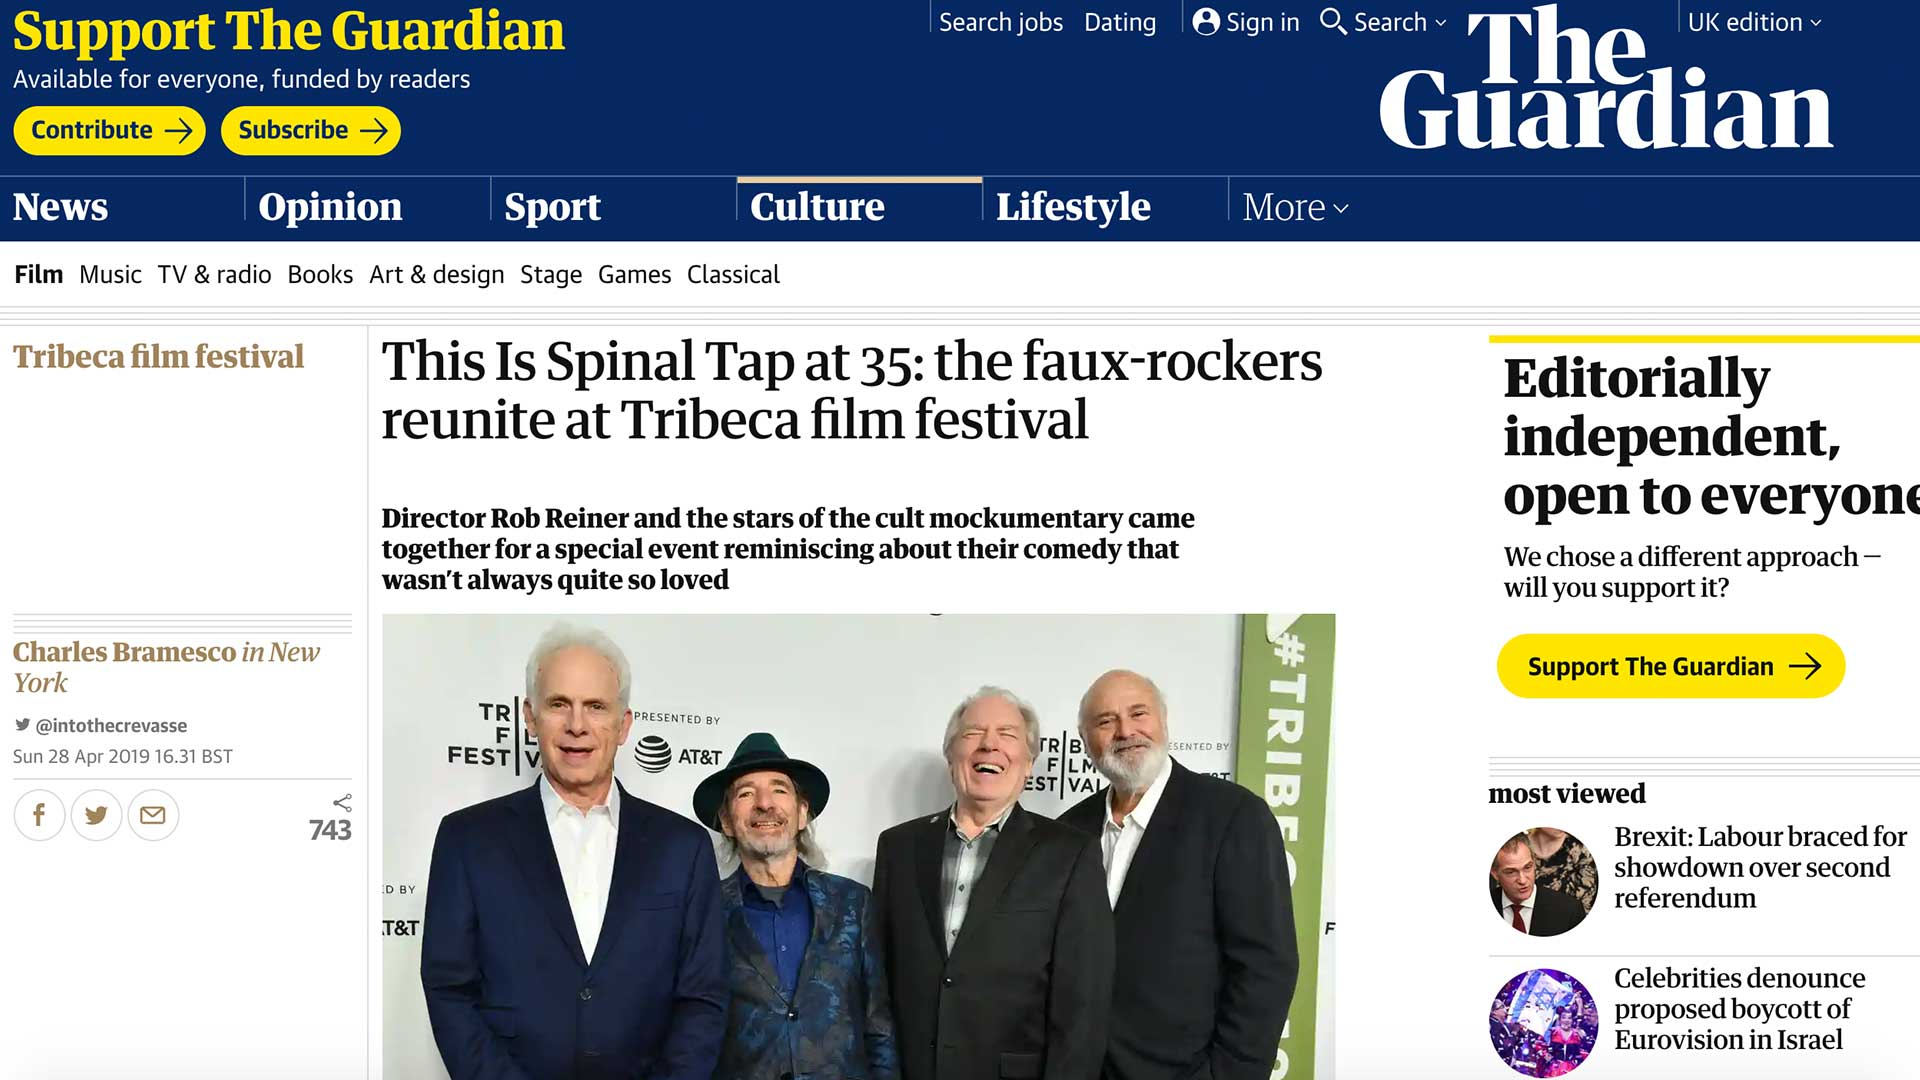 Fairness Rocks News This Is Spinal Tap at 35: the faux-rockers reunite at Tribeca film festival